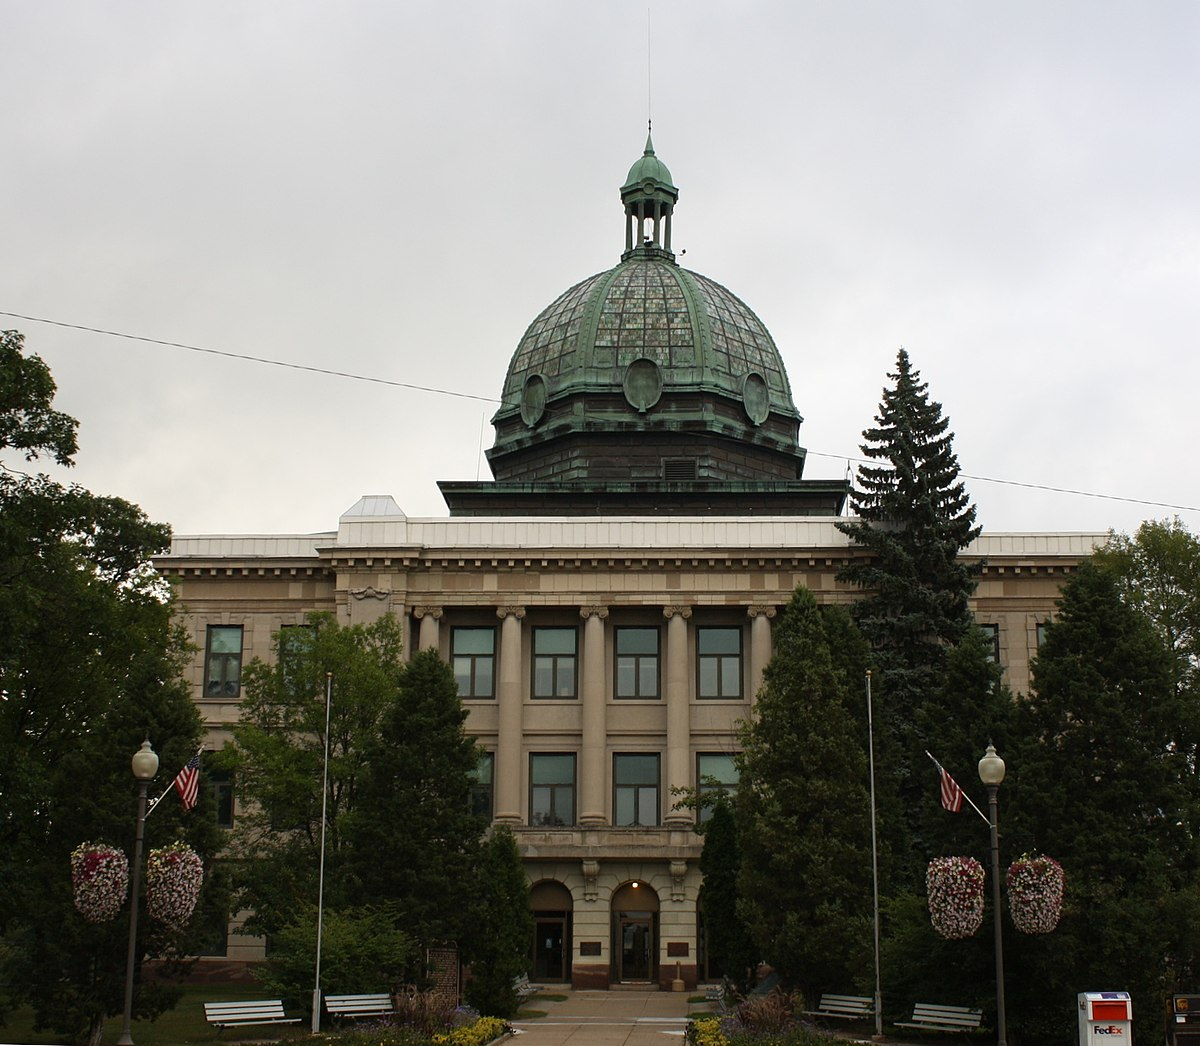 county oneida wisconsin courthouse rhinelander wikipedia history counties board wi wxpr population census september everipedia